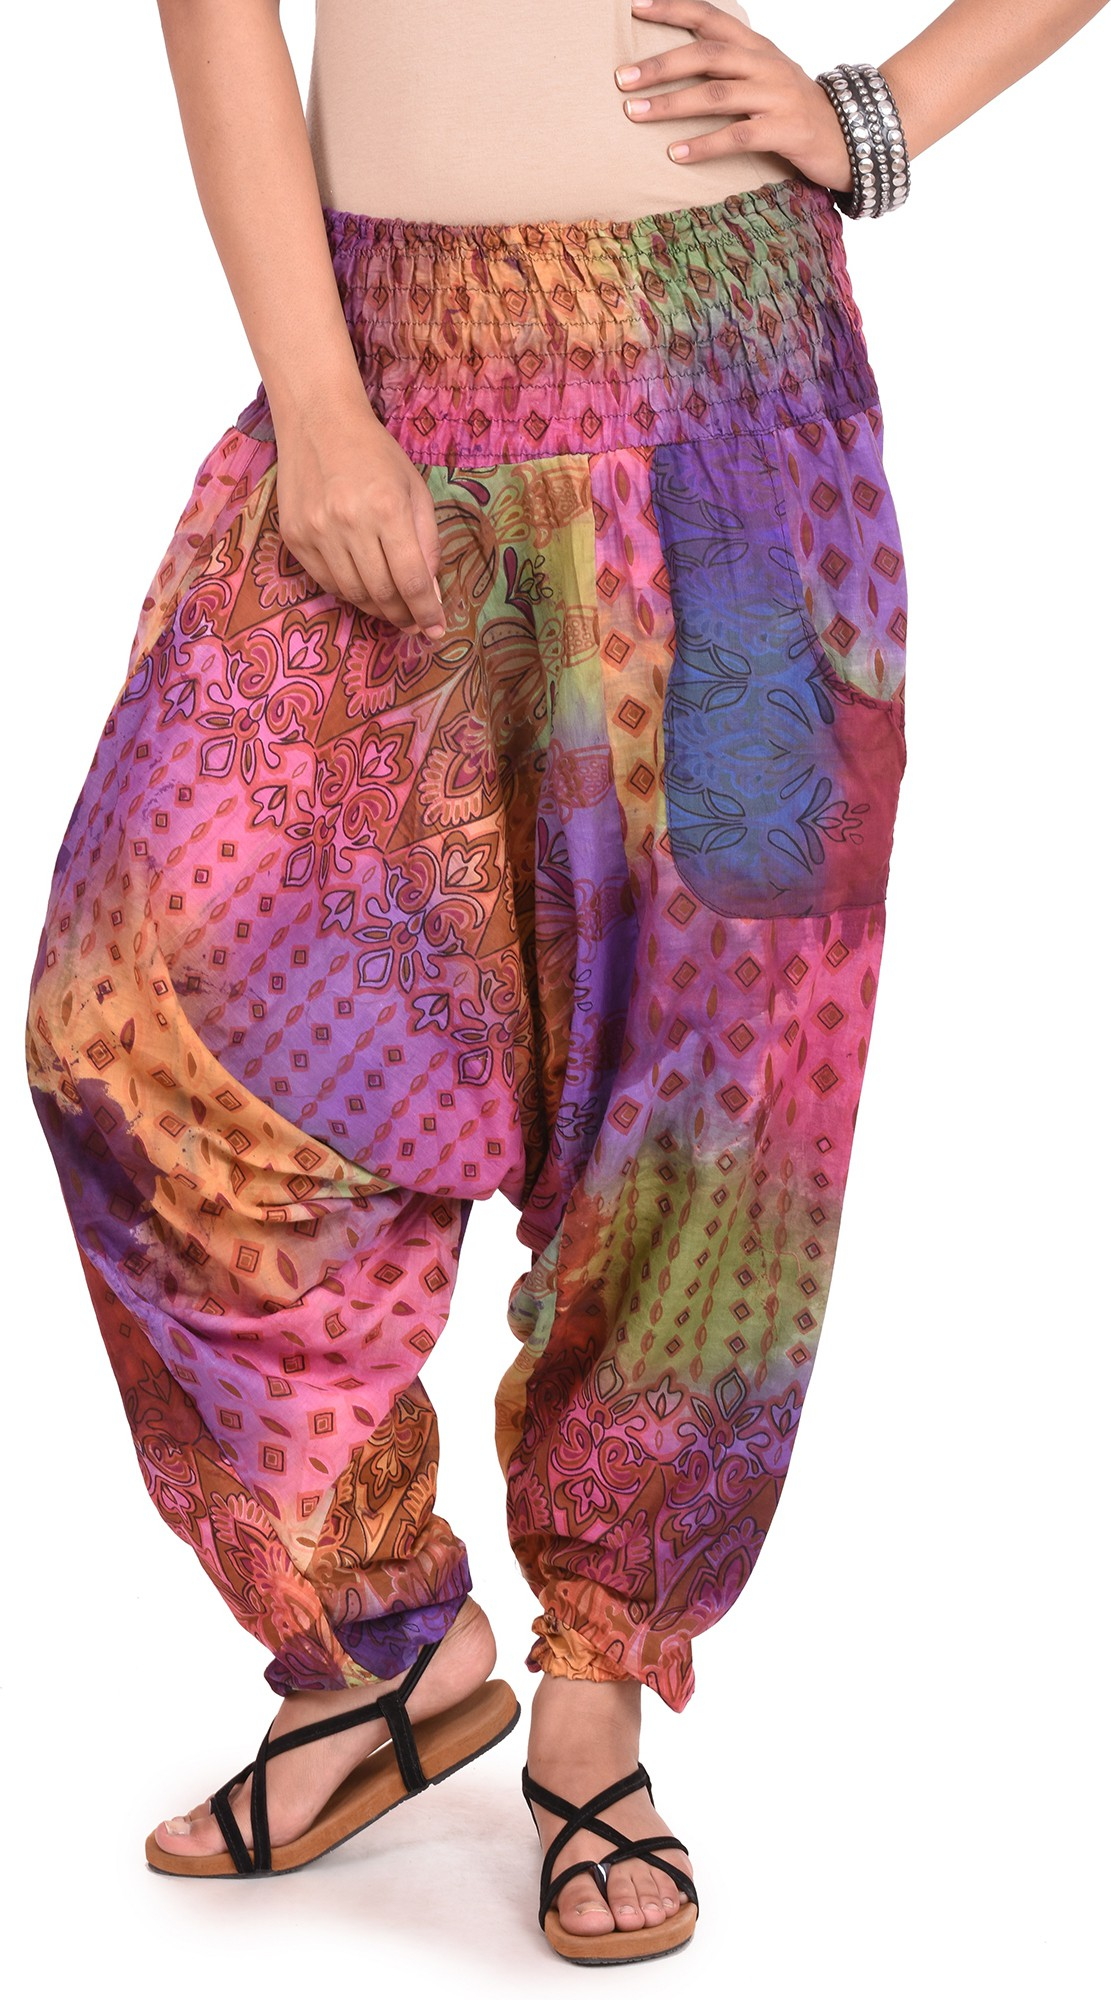 Happy Hangar Printed Poly Cotton Womens Harem Pants